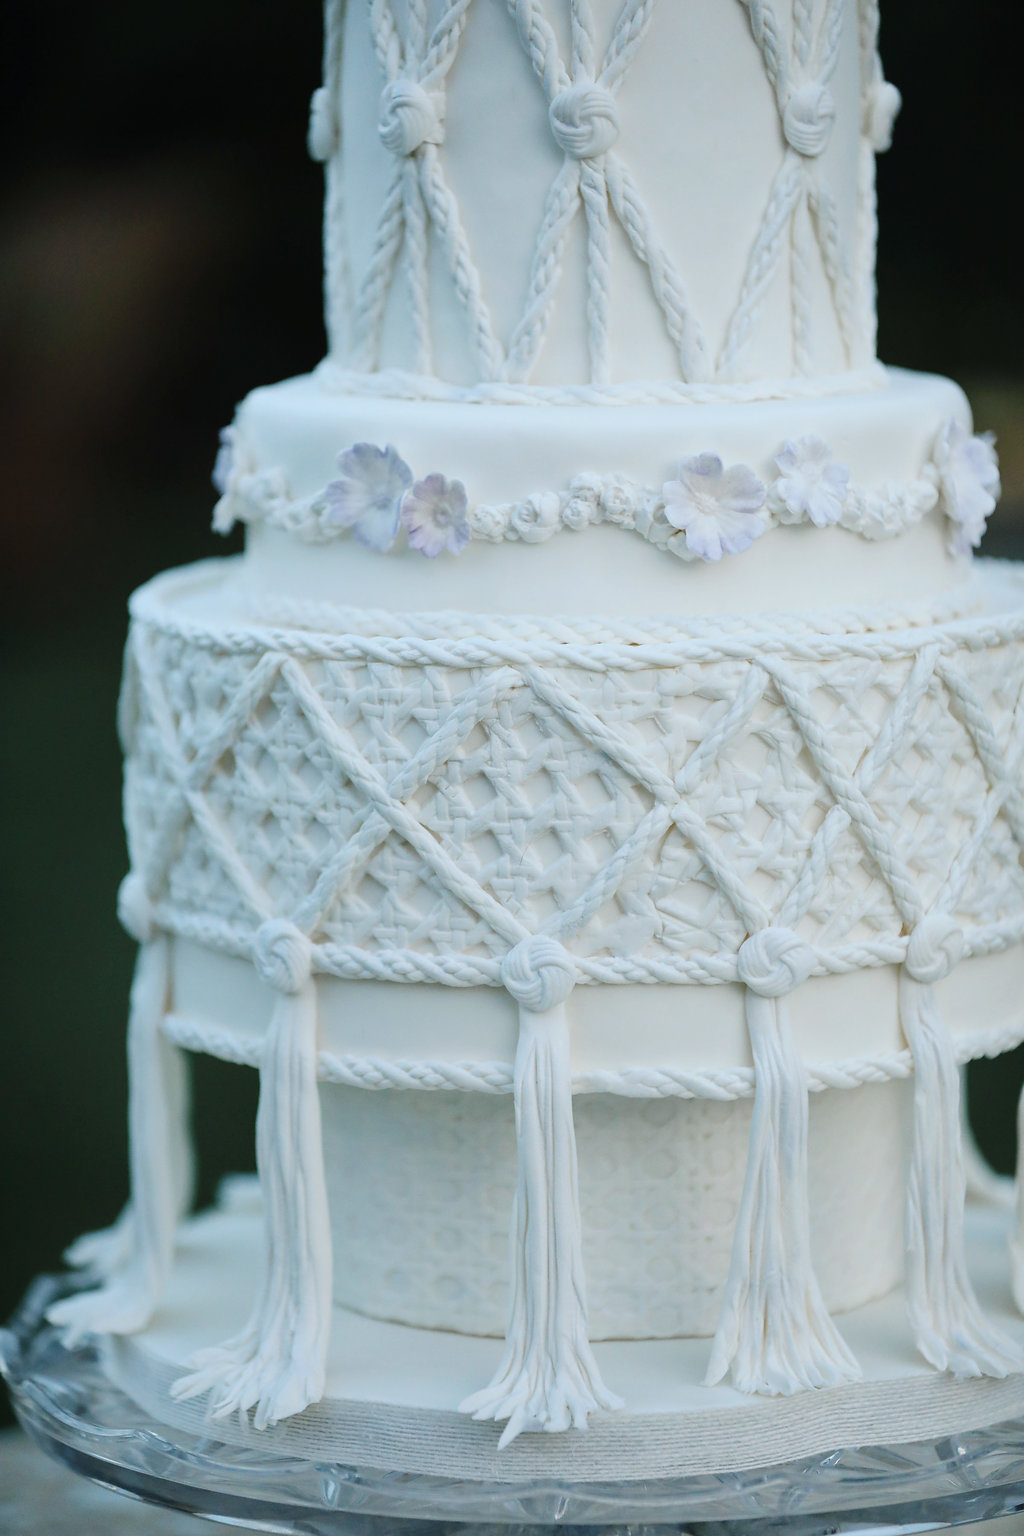 Macrame wedding cake details on top of cut glass cake plate from Birdie in a Barn vintage rentals in the Temecula Valley.